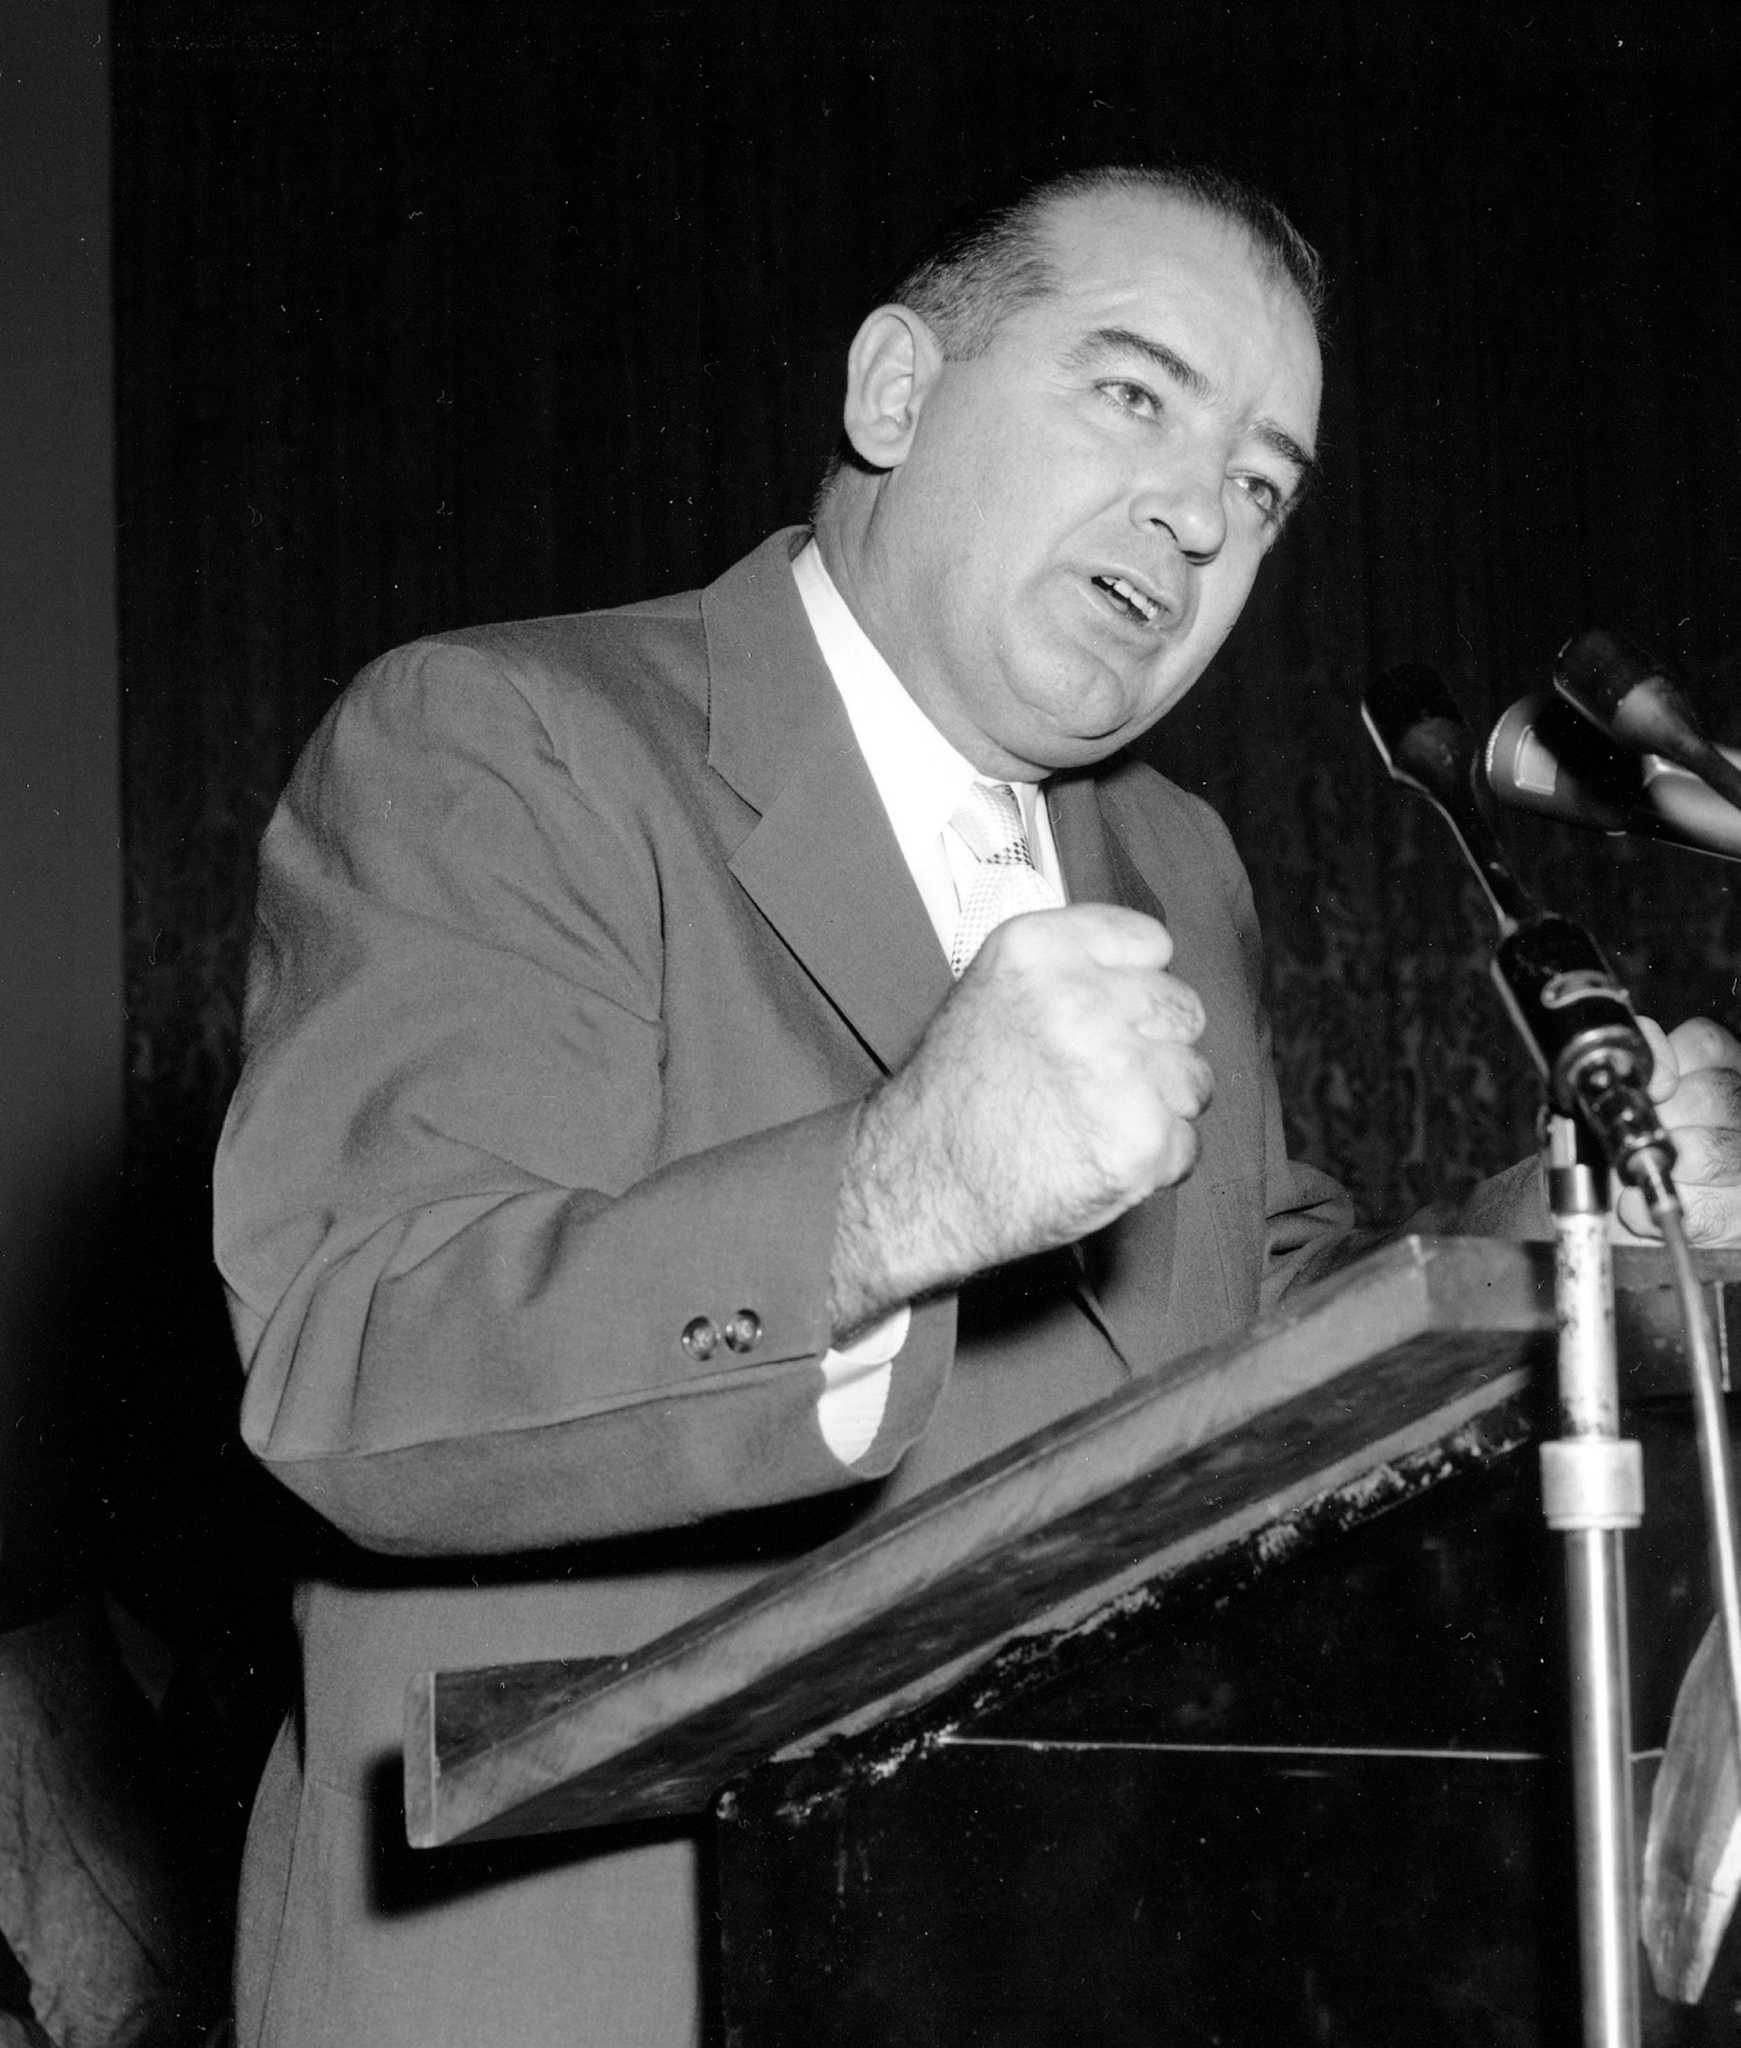 senator joseph mccarthy and communism At the time of mccarthy's speech, communism was a growing concern in  senator joseph r mccarthy and the catholic  censure of senator joseph mccarthy.